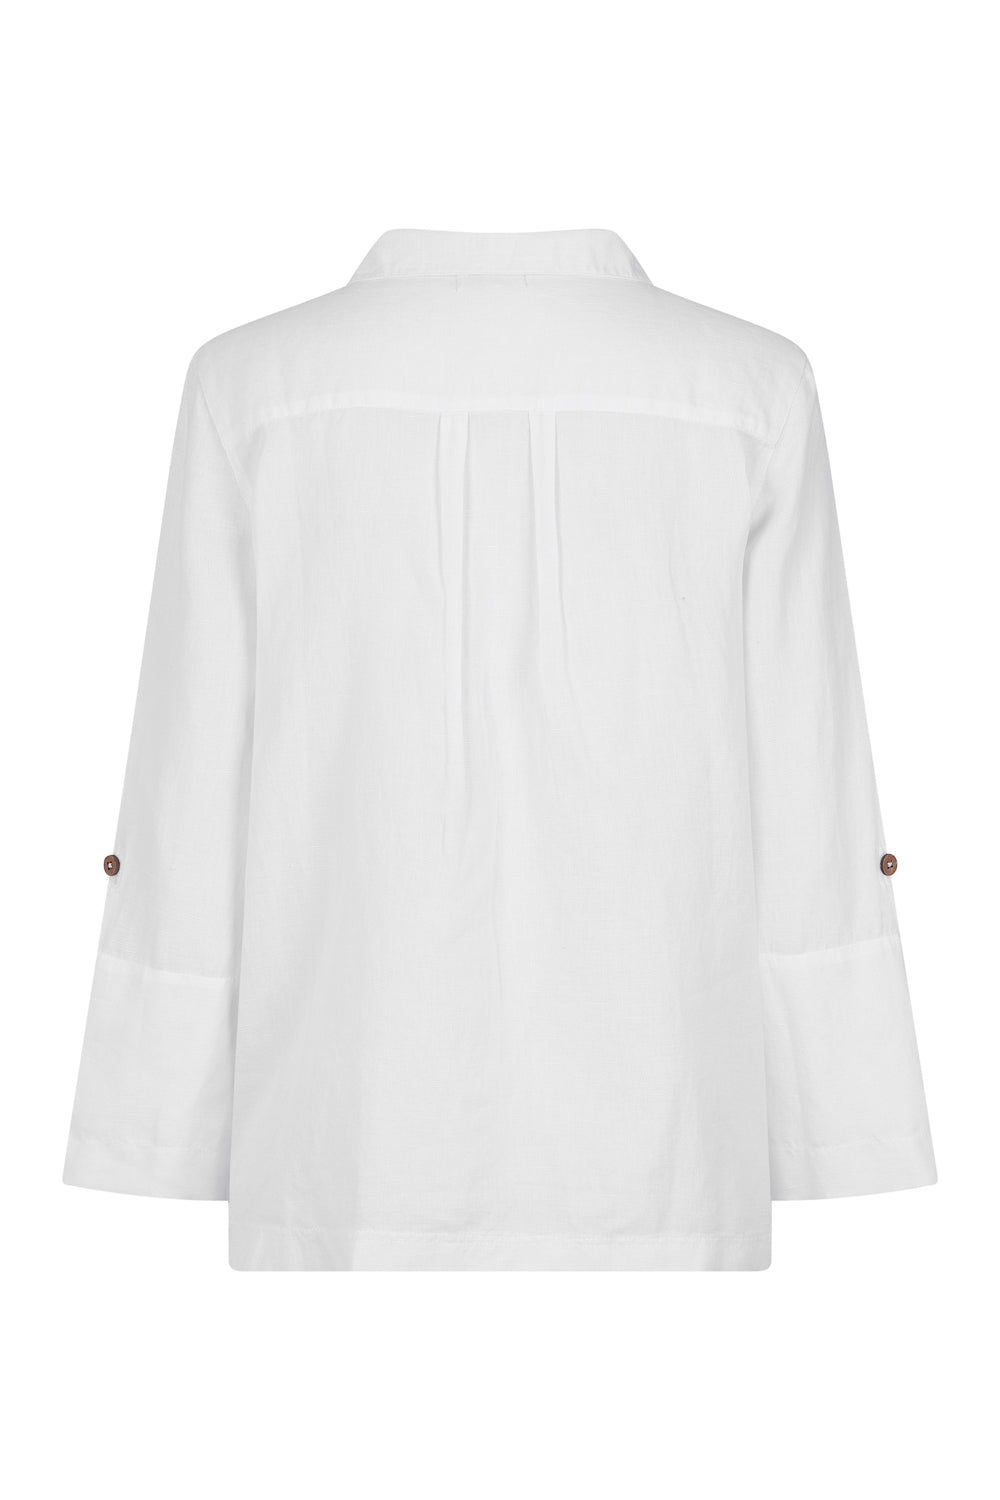 Summertime Smock - White